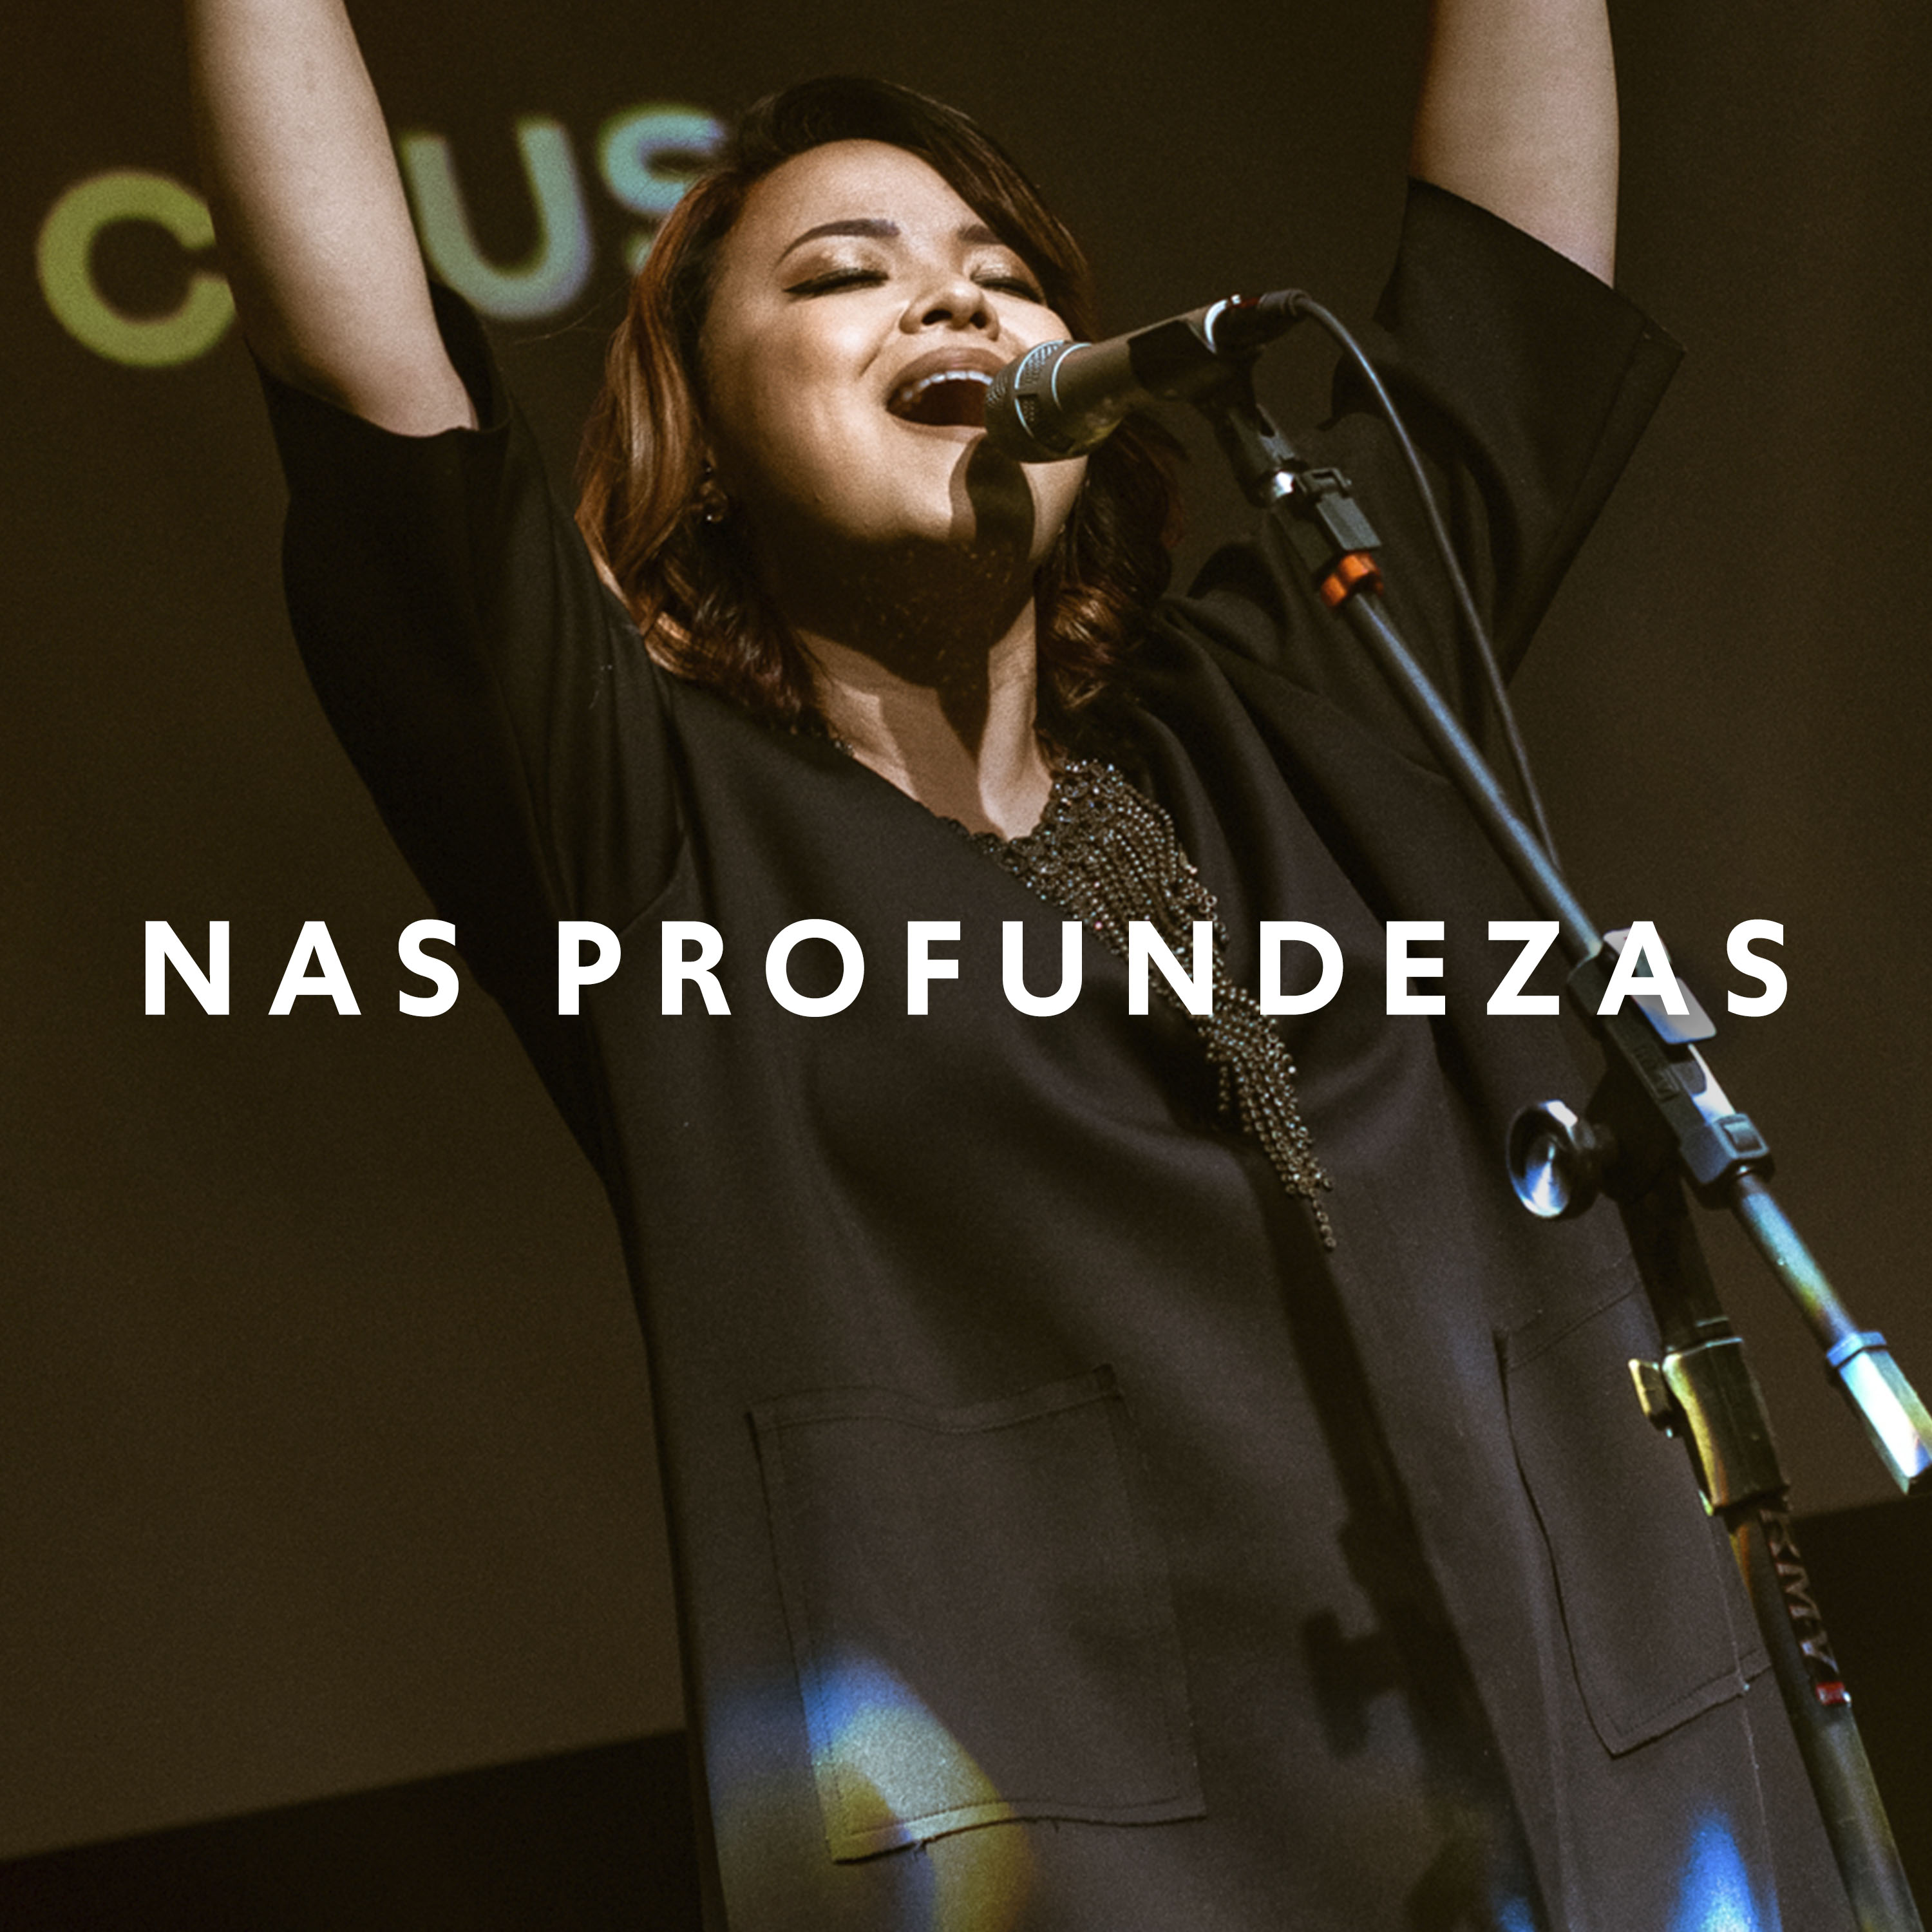 Nas Profundezas (single)